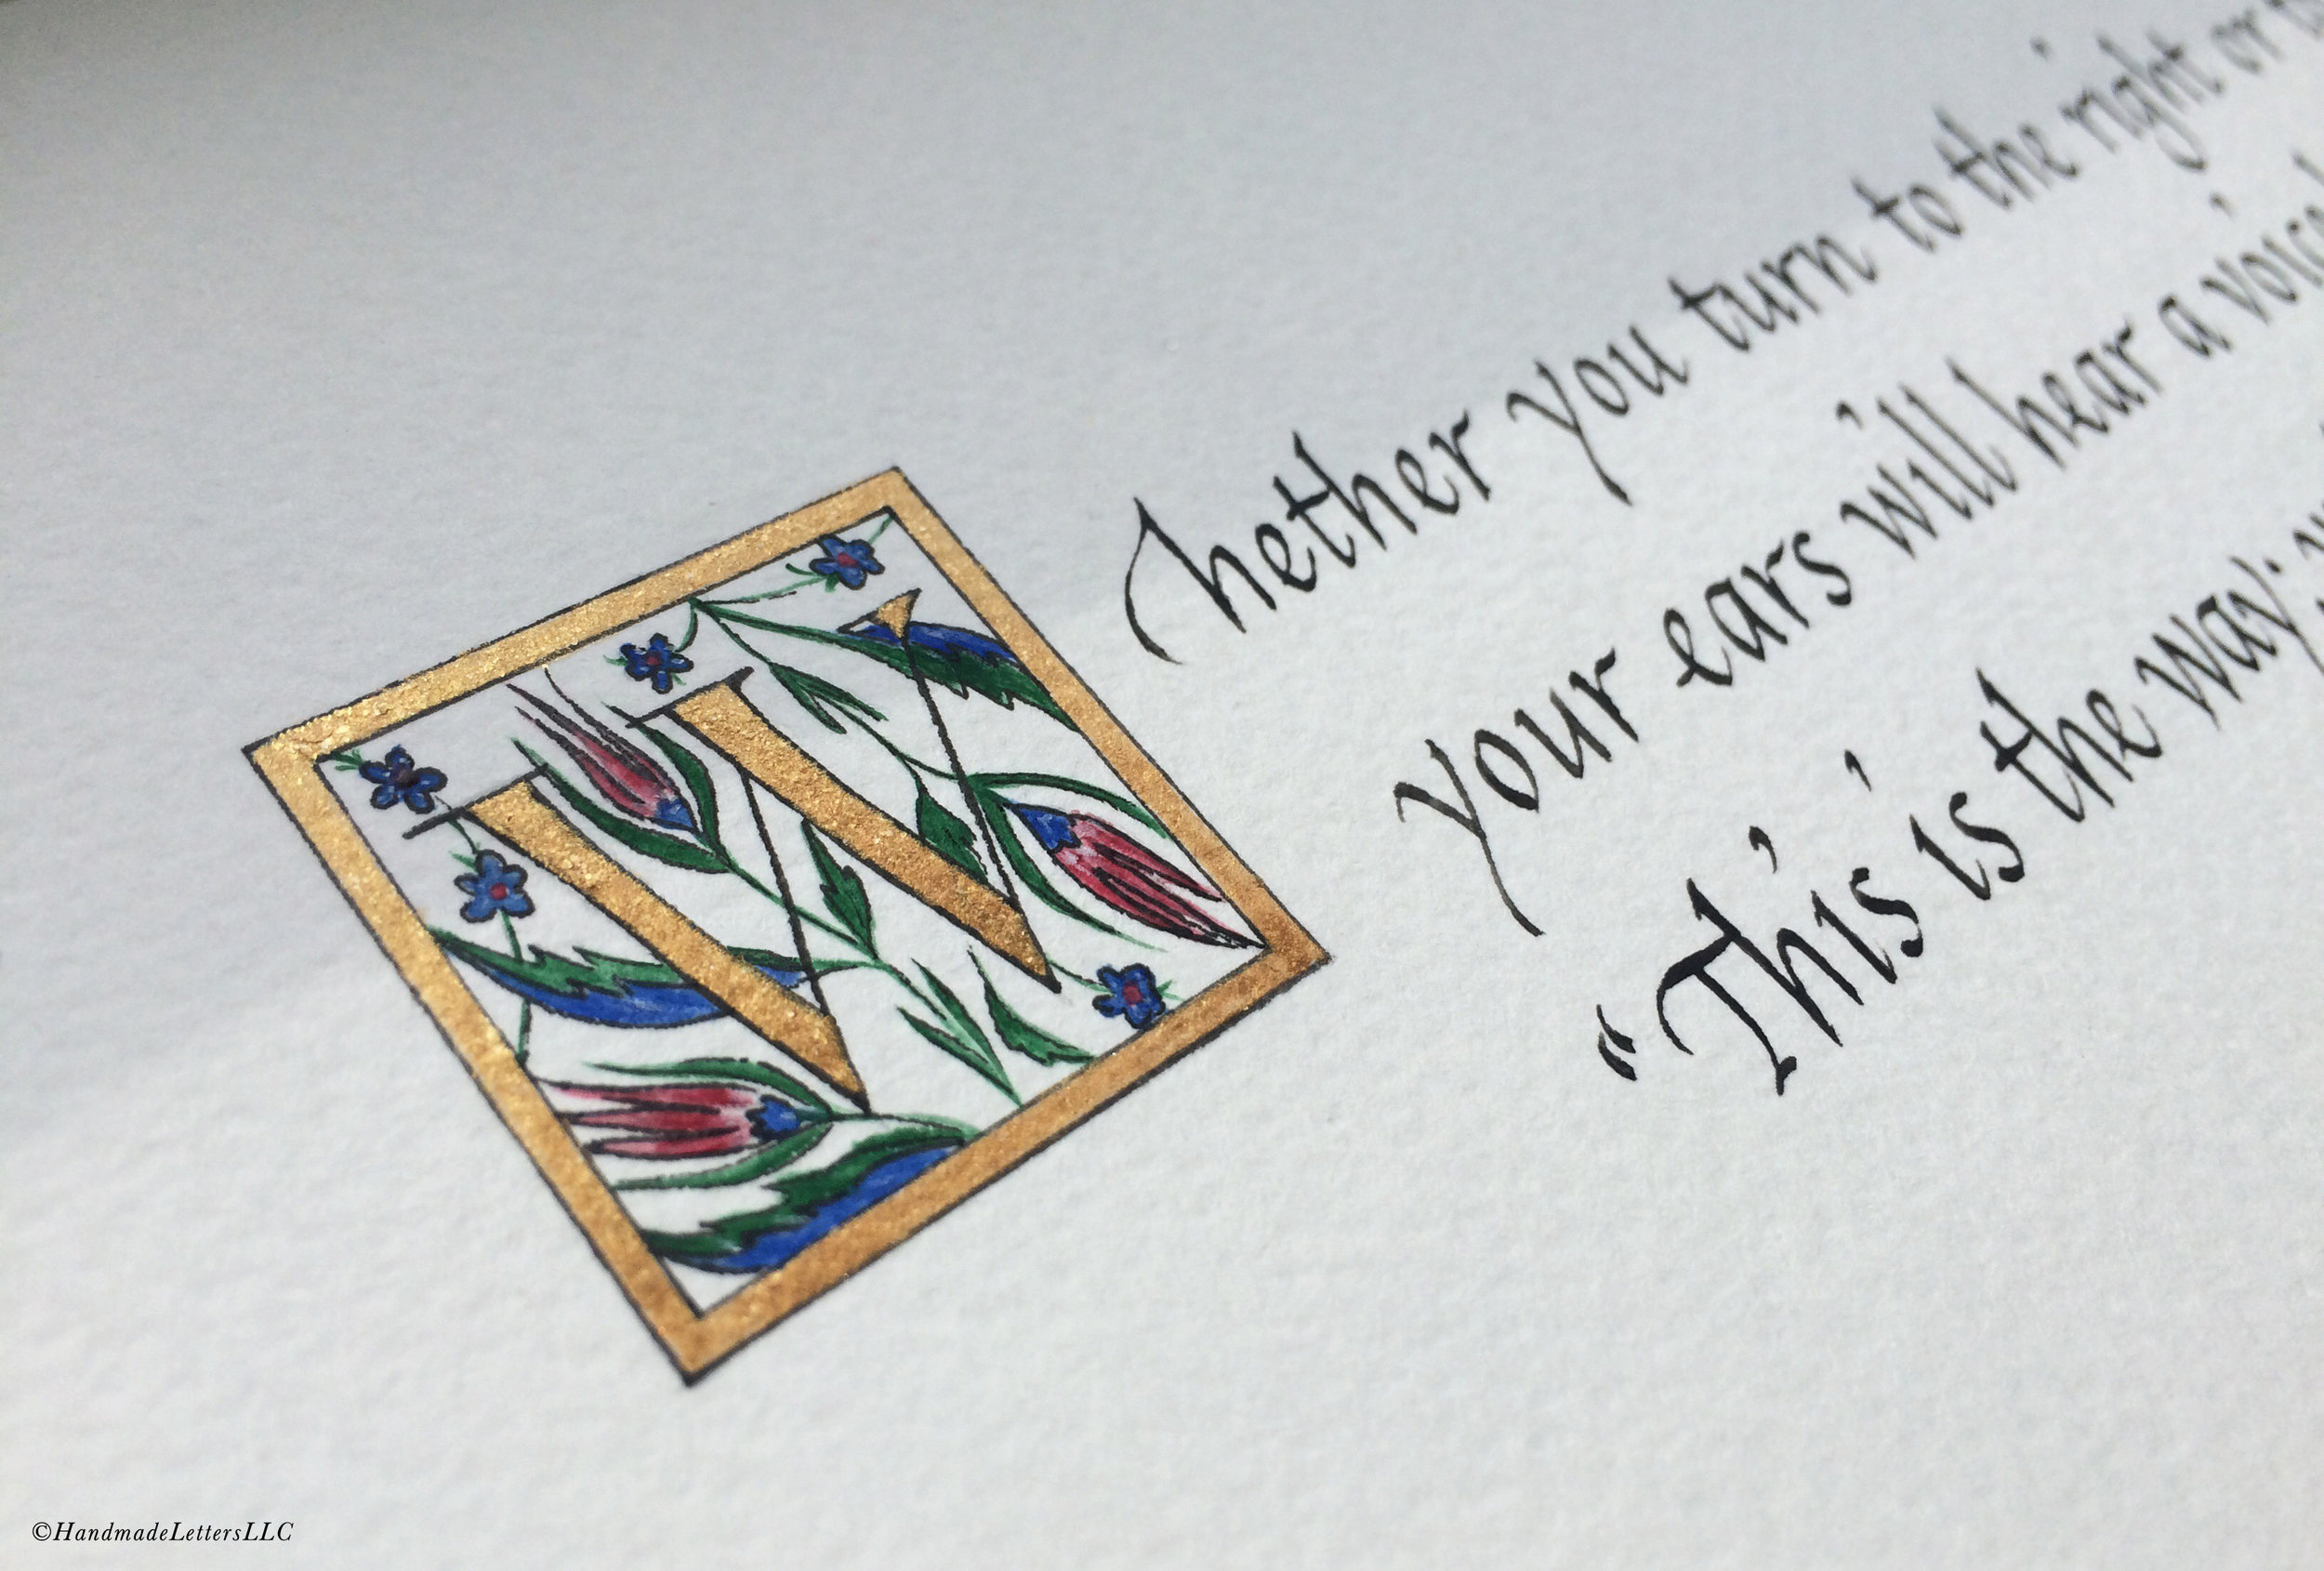 Handmade Letters - Retirement Gift for a Father